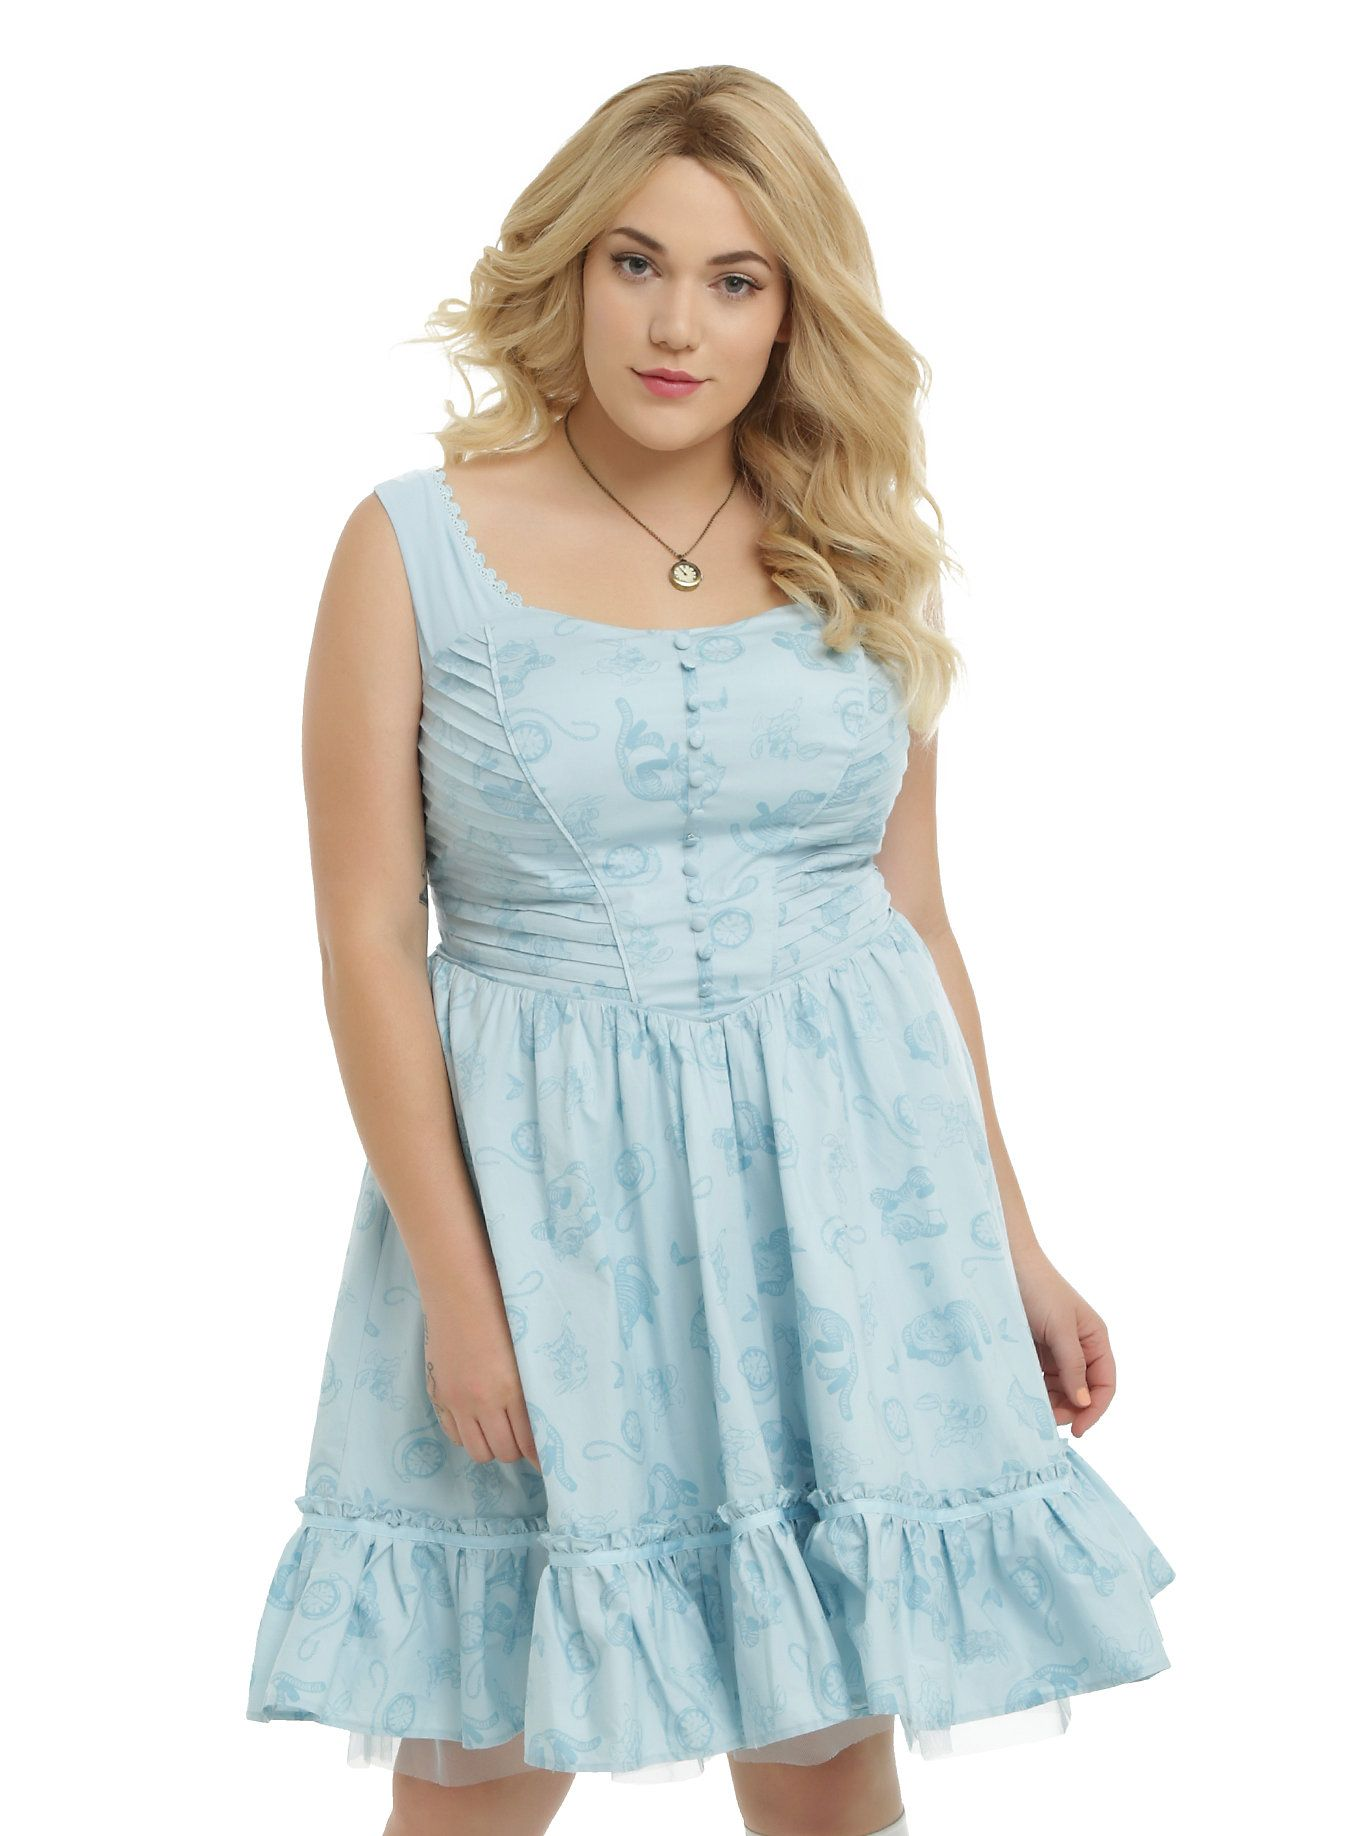 p>blue dress from the limited edition hot topic <i>alice through